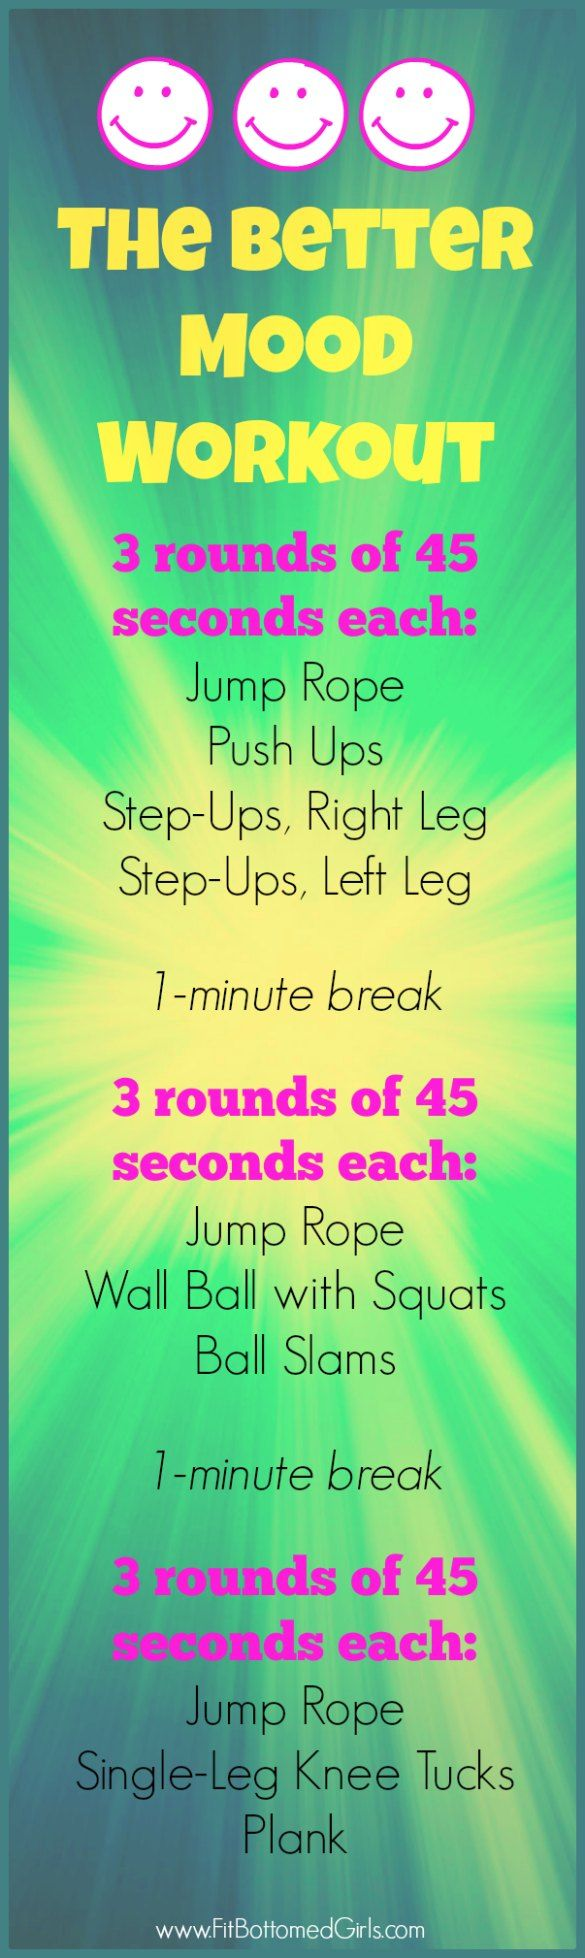 This workout saved Tish from a terrible, horrible, no-good, very bad day, hence why it's called the Better Mood Workout!